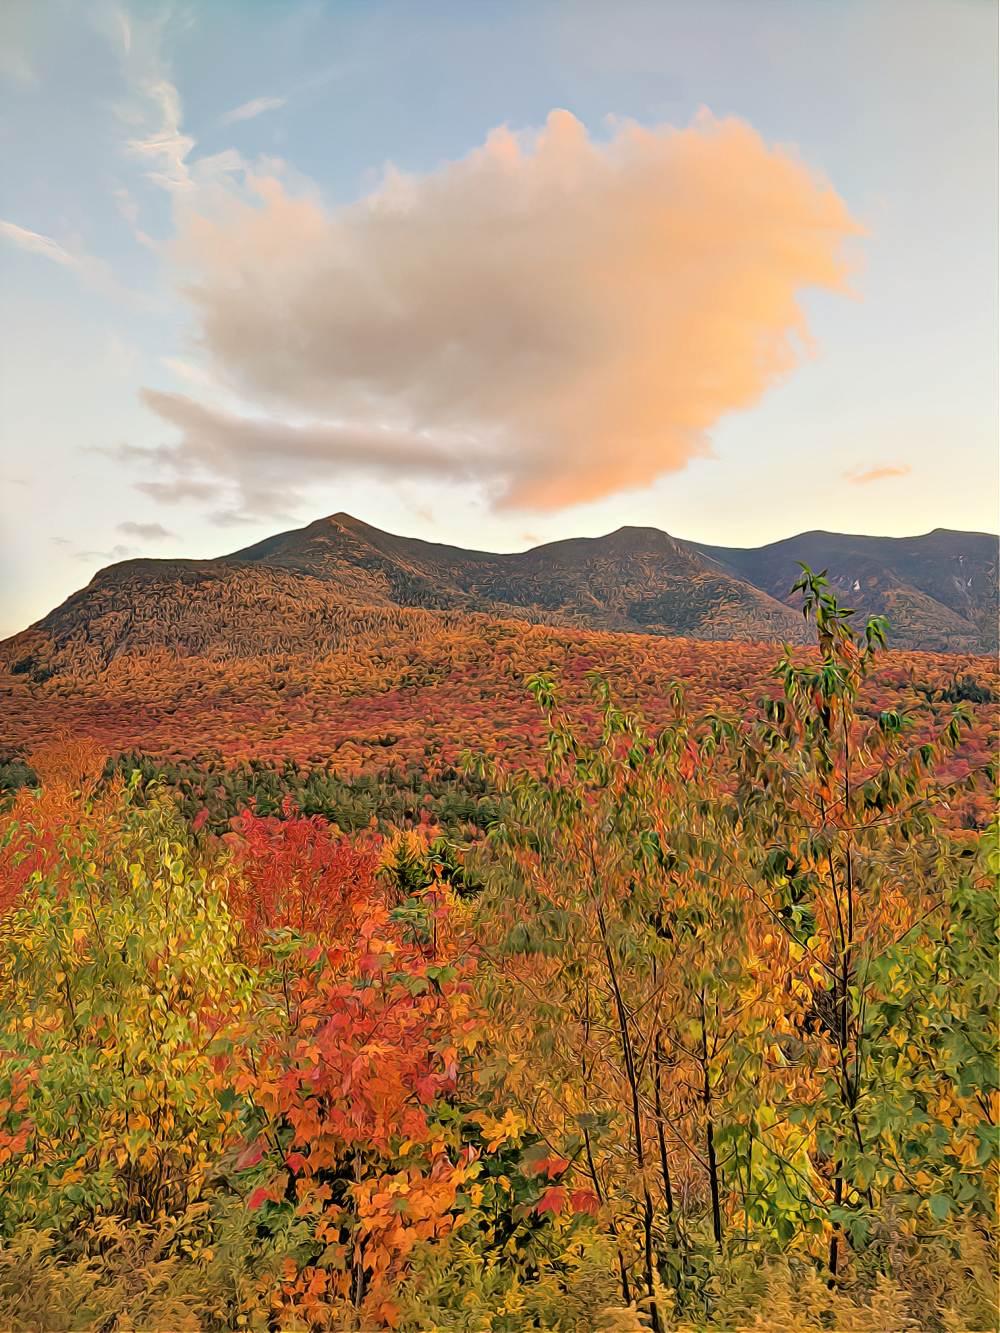 Kancamagus Highway in White Mountains explodes with colors in the fall.